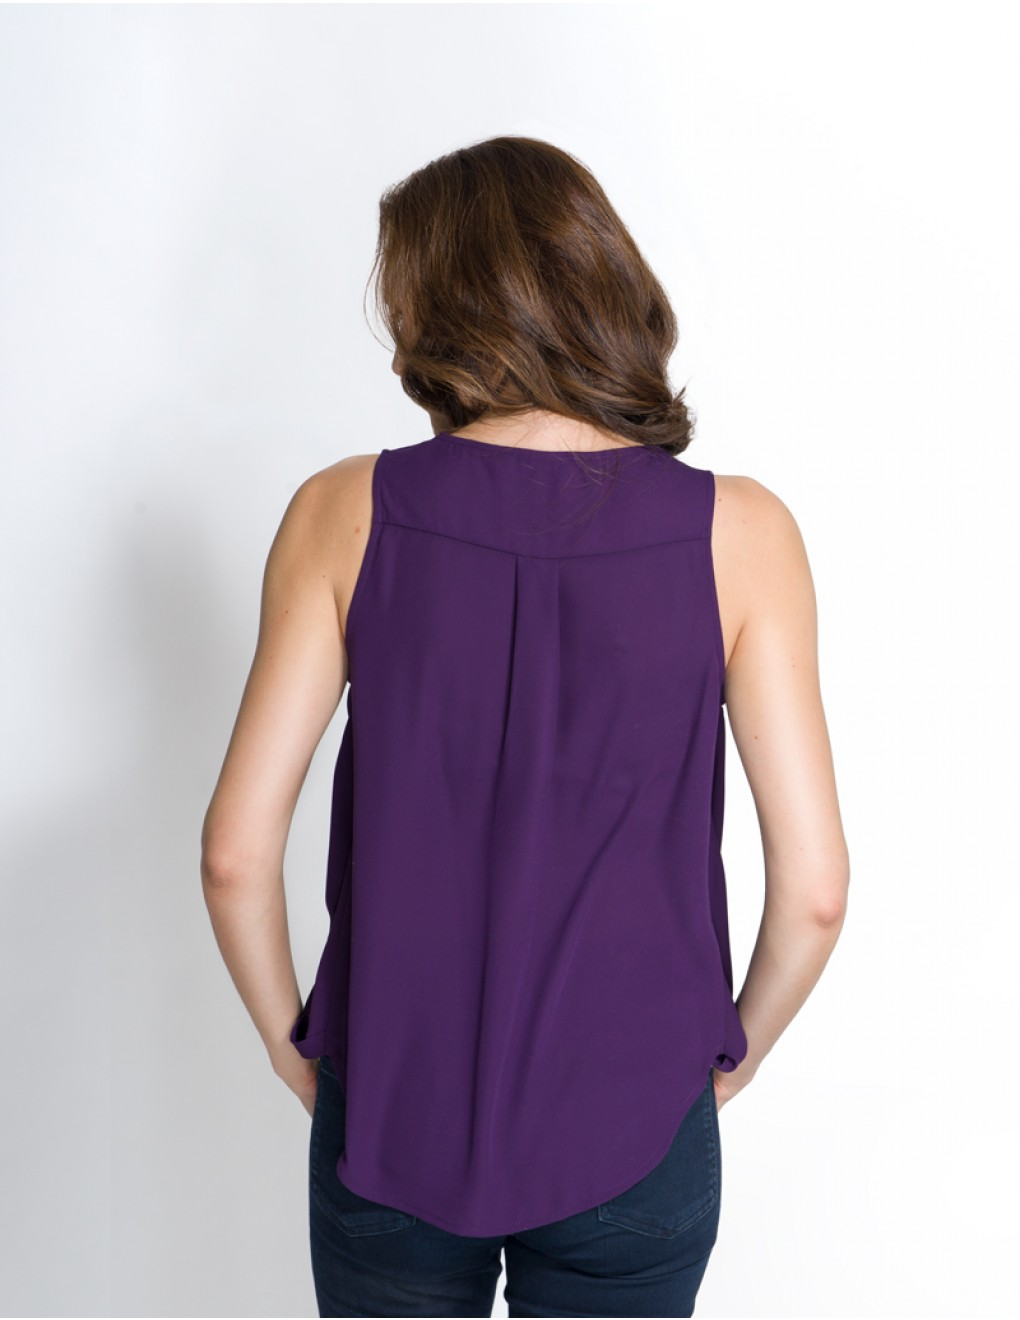 momzelle-isabelle-nursing-tank-purple-back.jpg